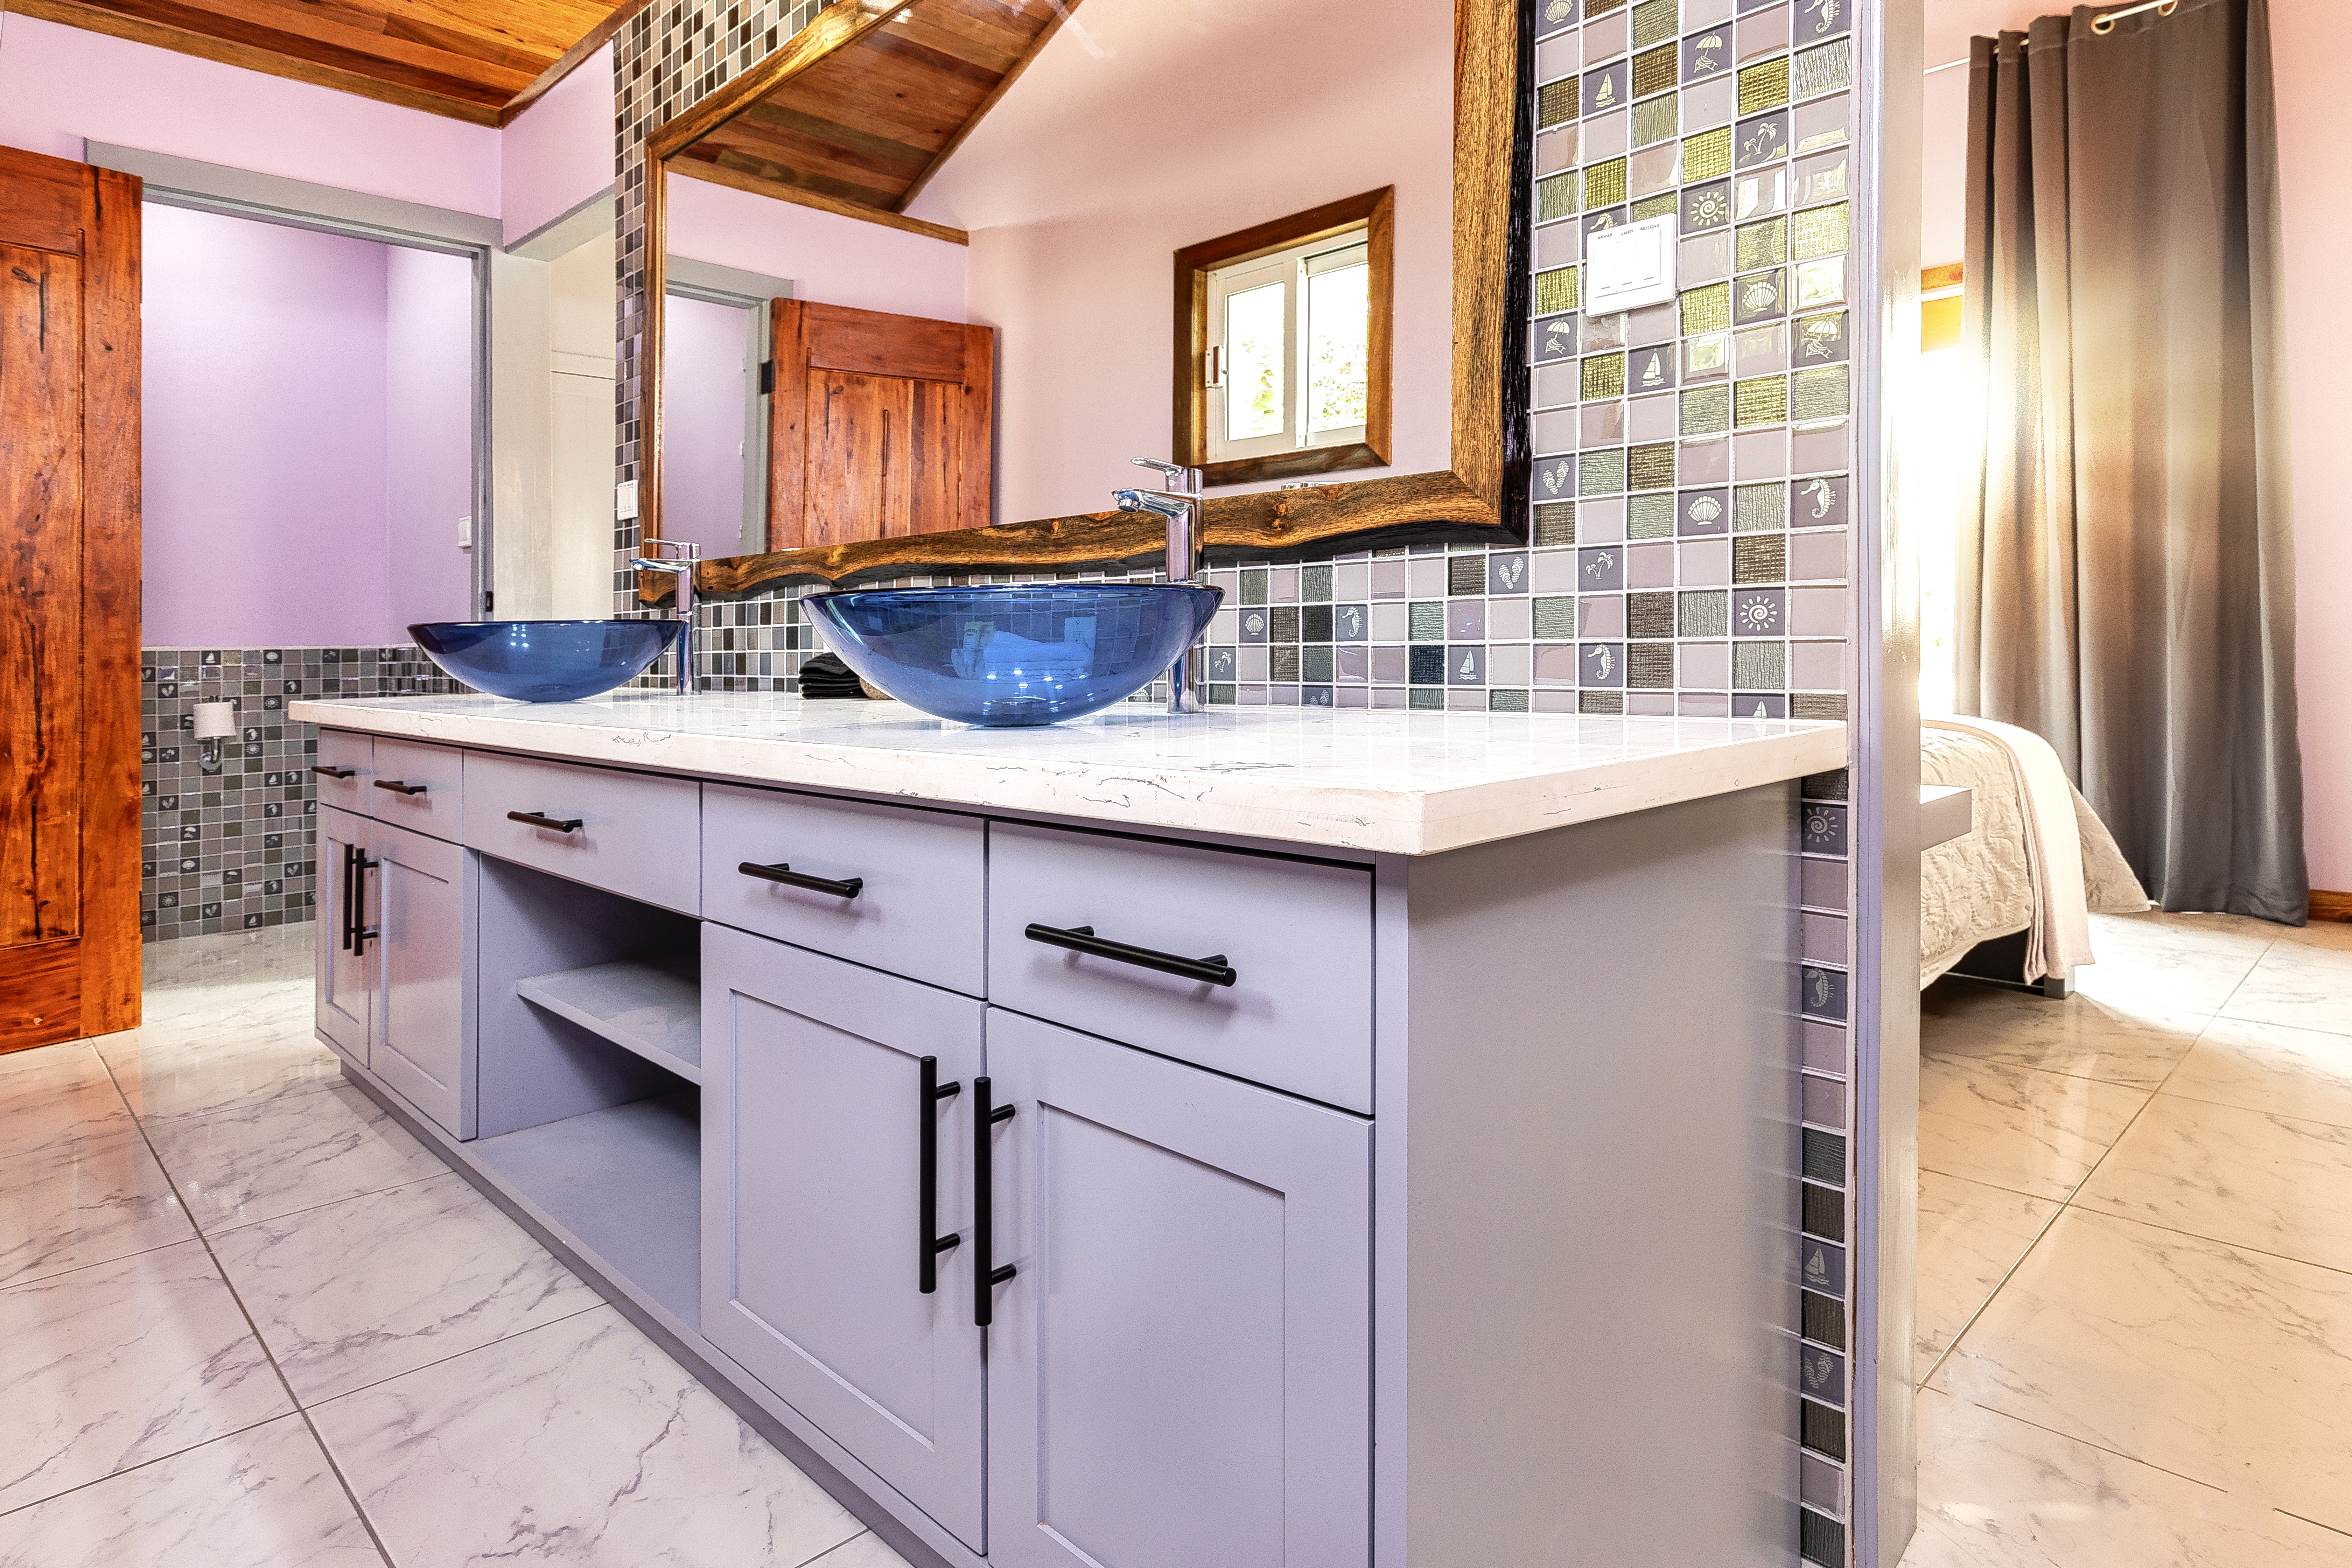 Casita Bathroom with double vanity